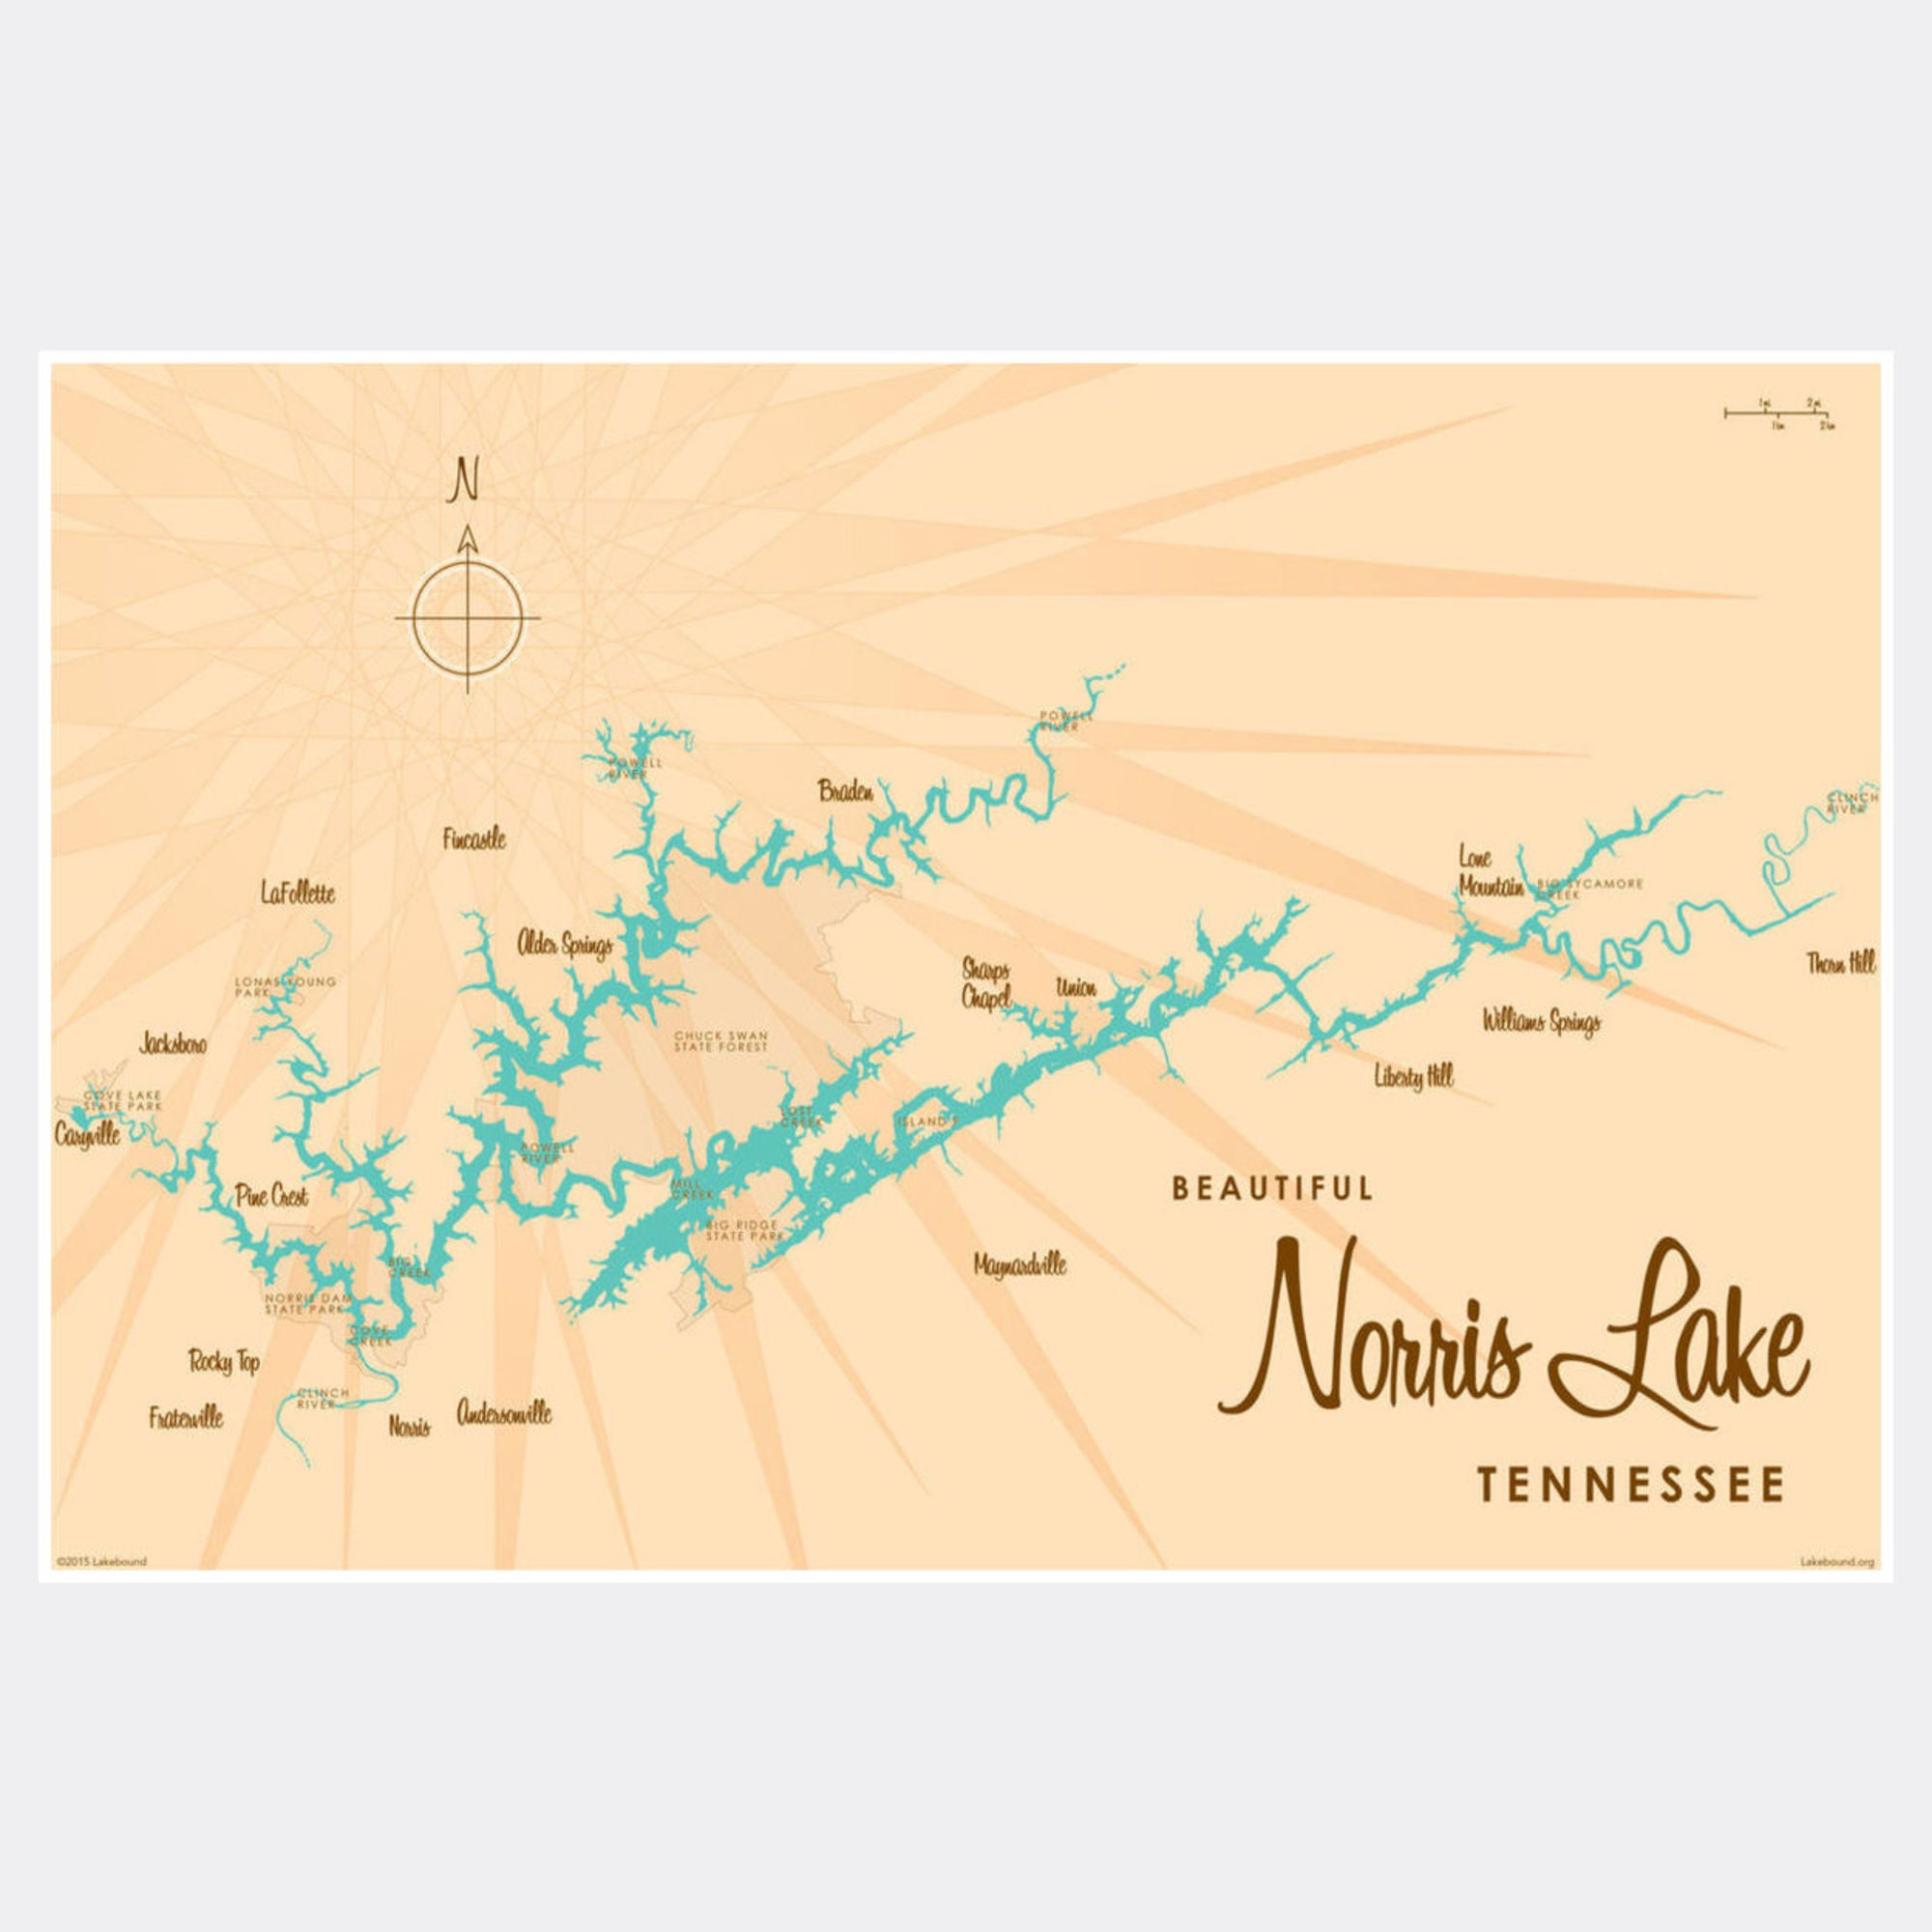 Norris Lake Tennessee, Paper Print